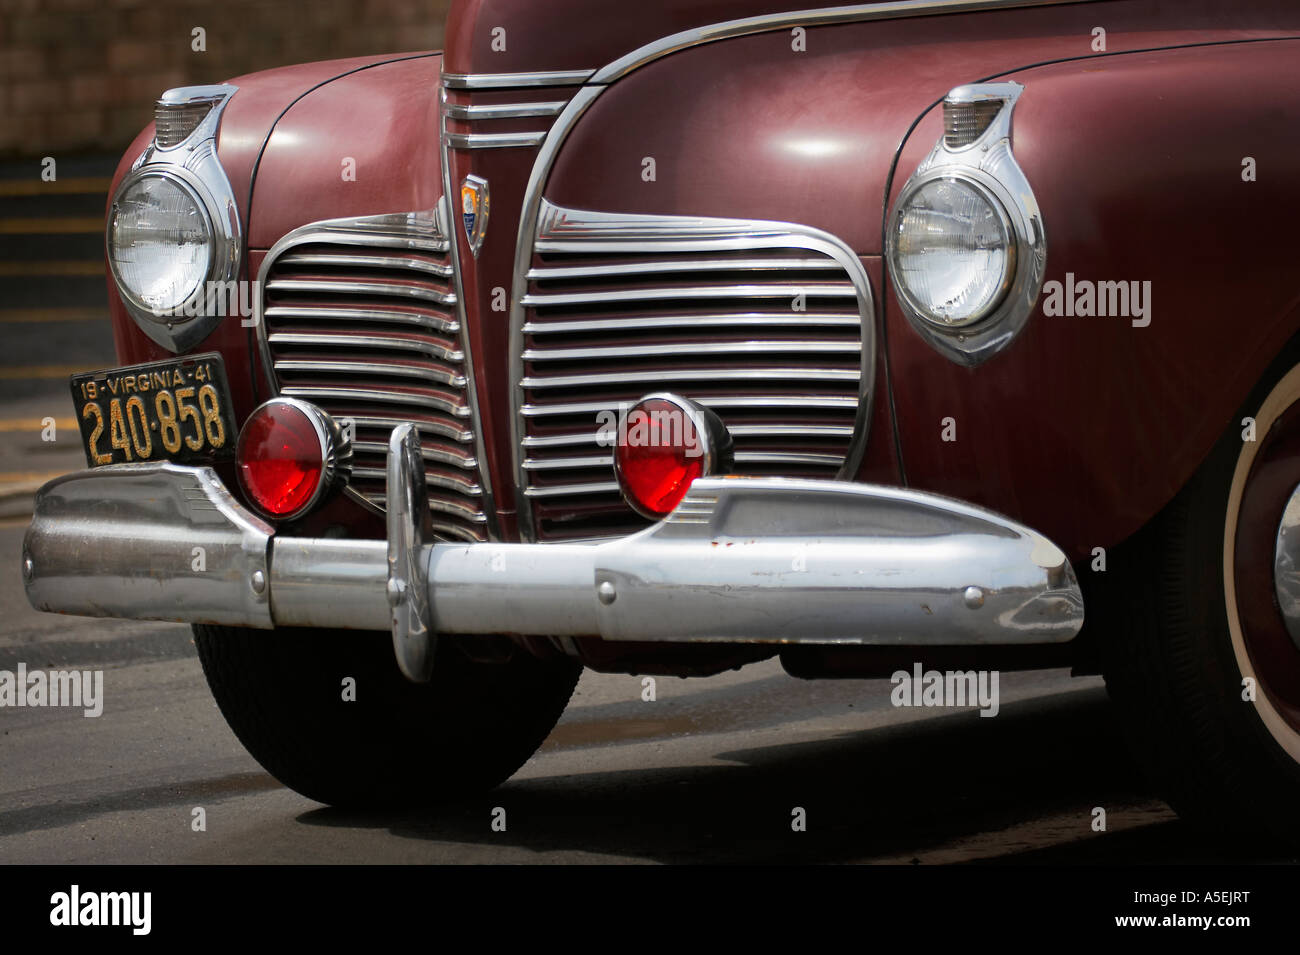 Plymouth Deluxe Stock Photos Images Alamy 1941 Special 4 Door The Nose Grill Headlights License Plate And Bumper Of An Antique